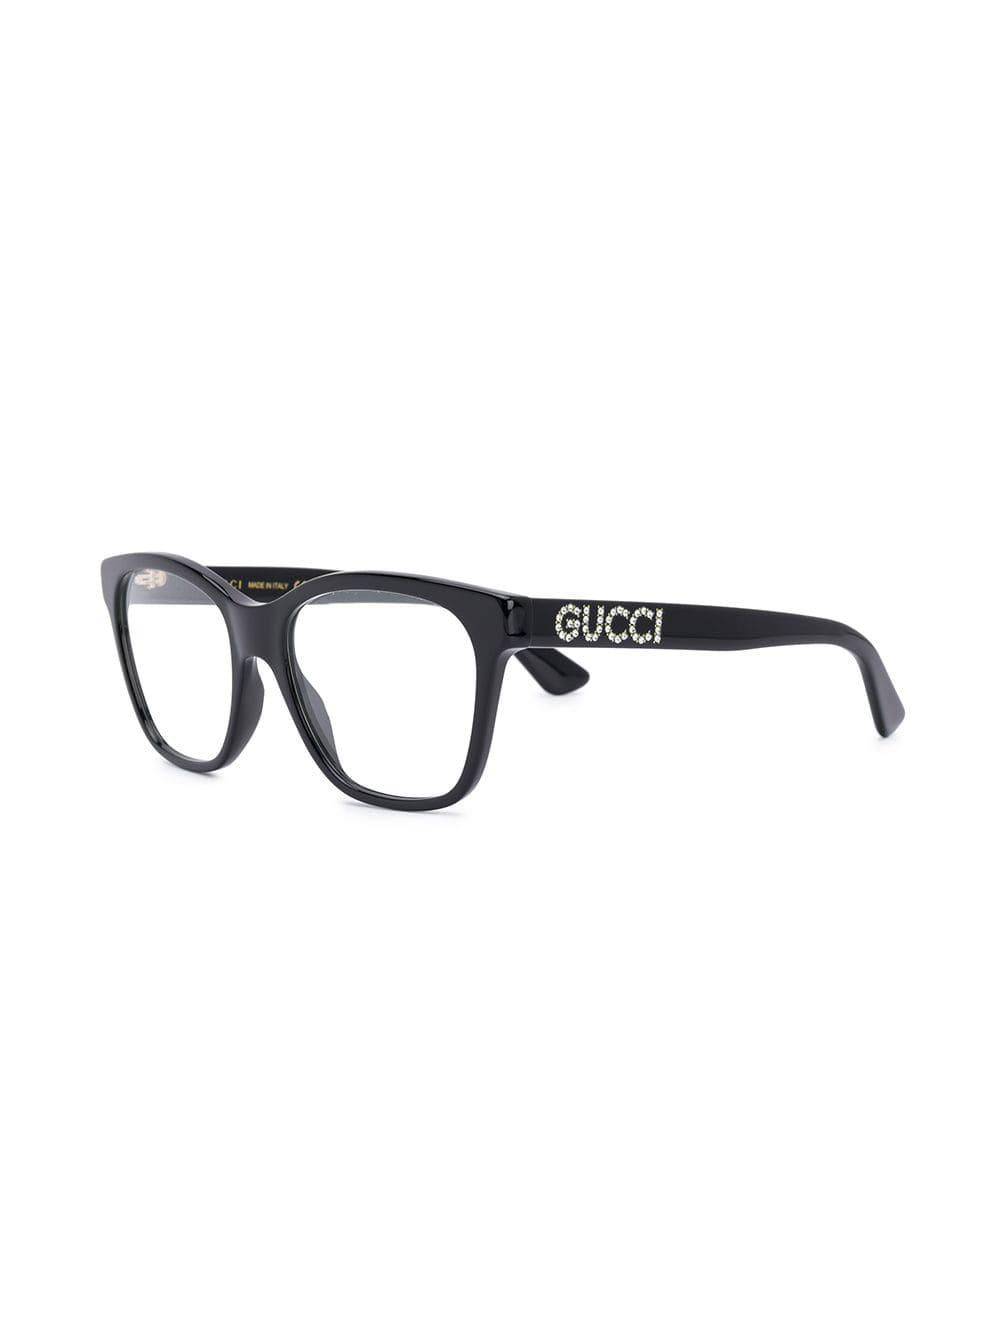 a075e23a6fd Lyst - Gucci Crystal Embellished Glasses in Black